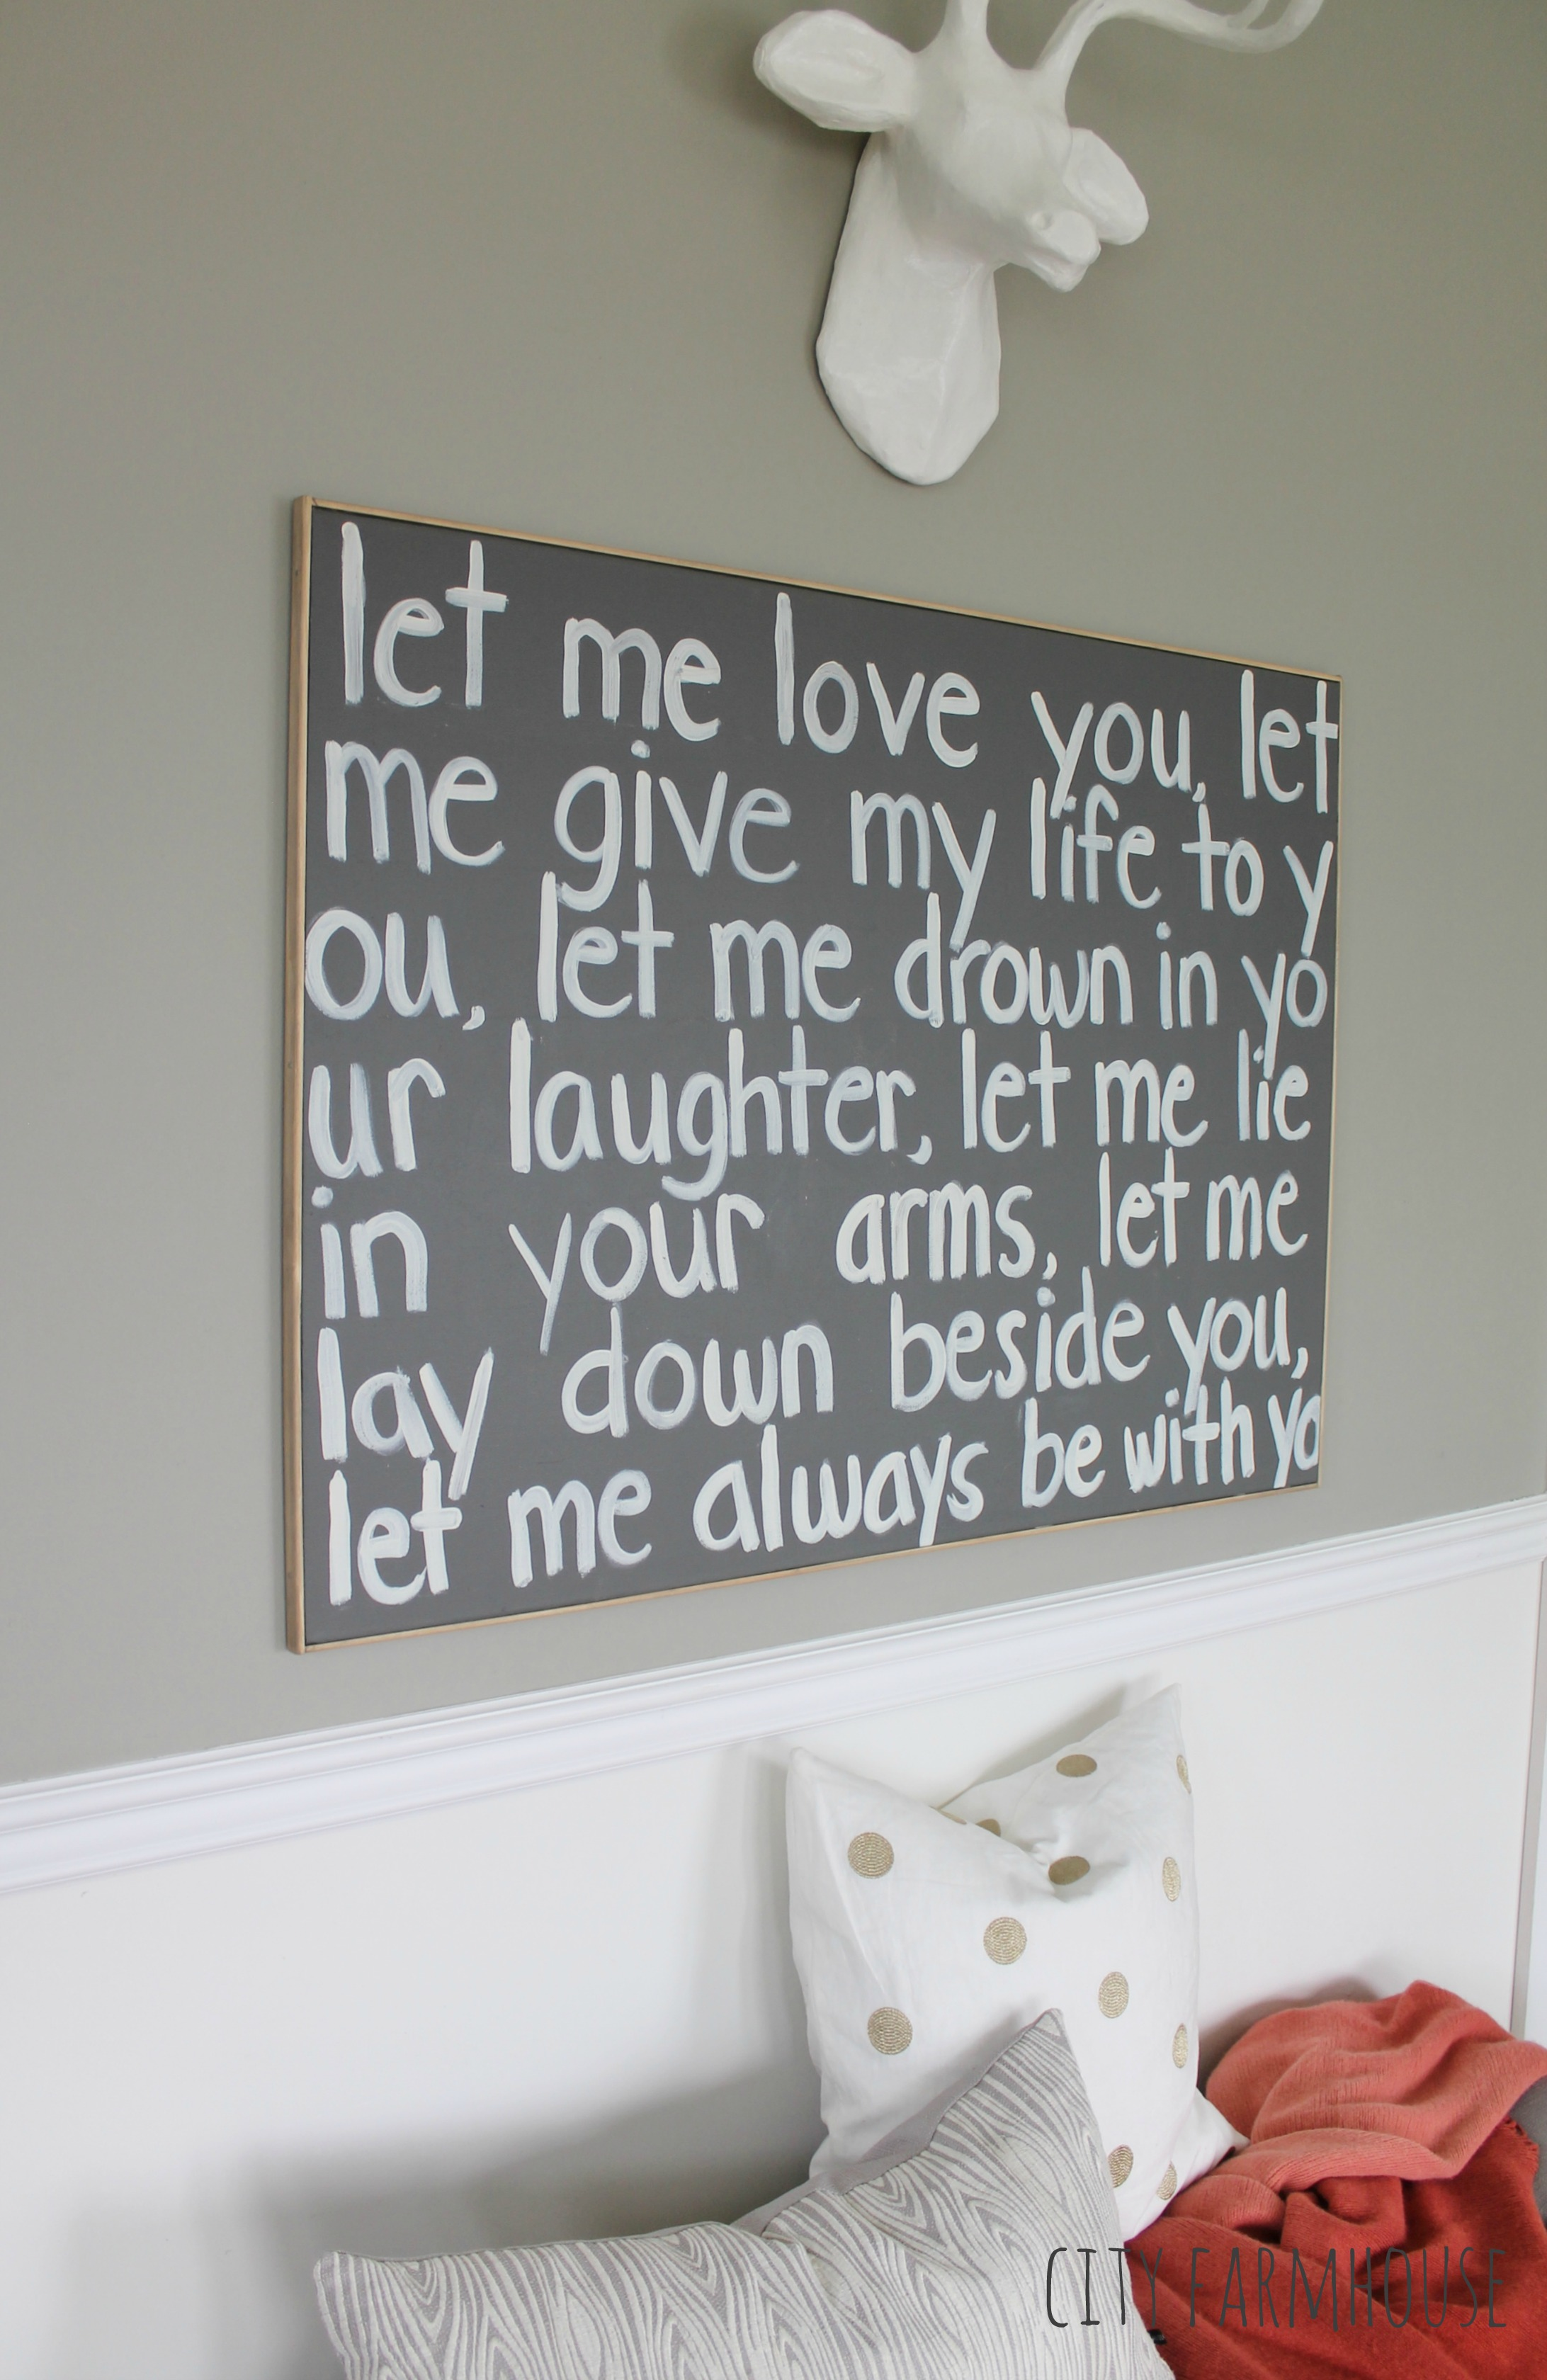 Diy Graffiti Art Using Wedding Song Lyrics A Great Gift For Under 30